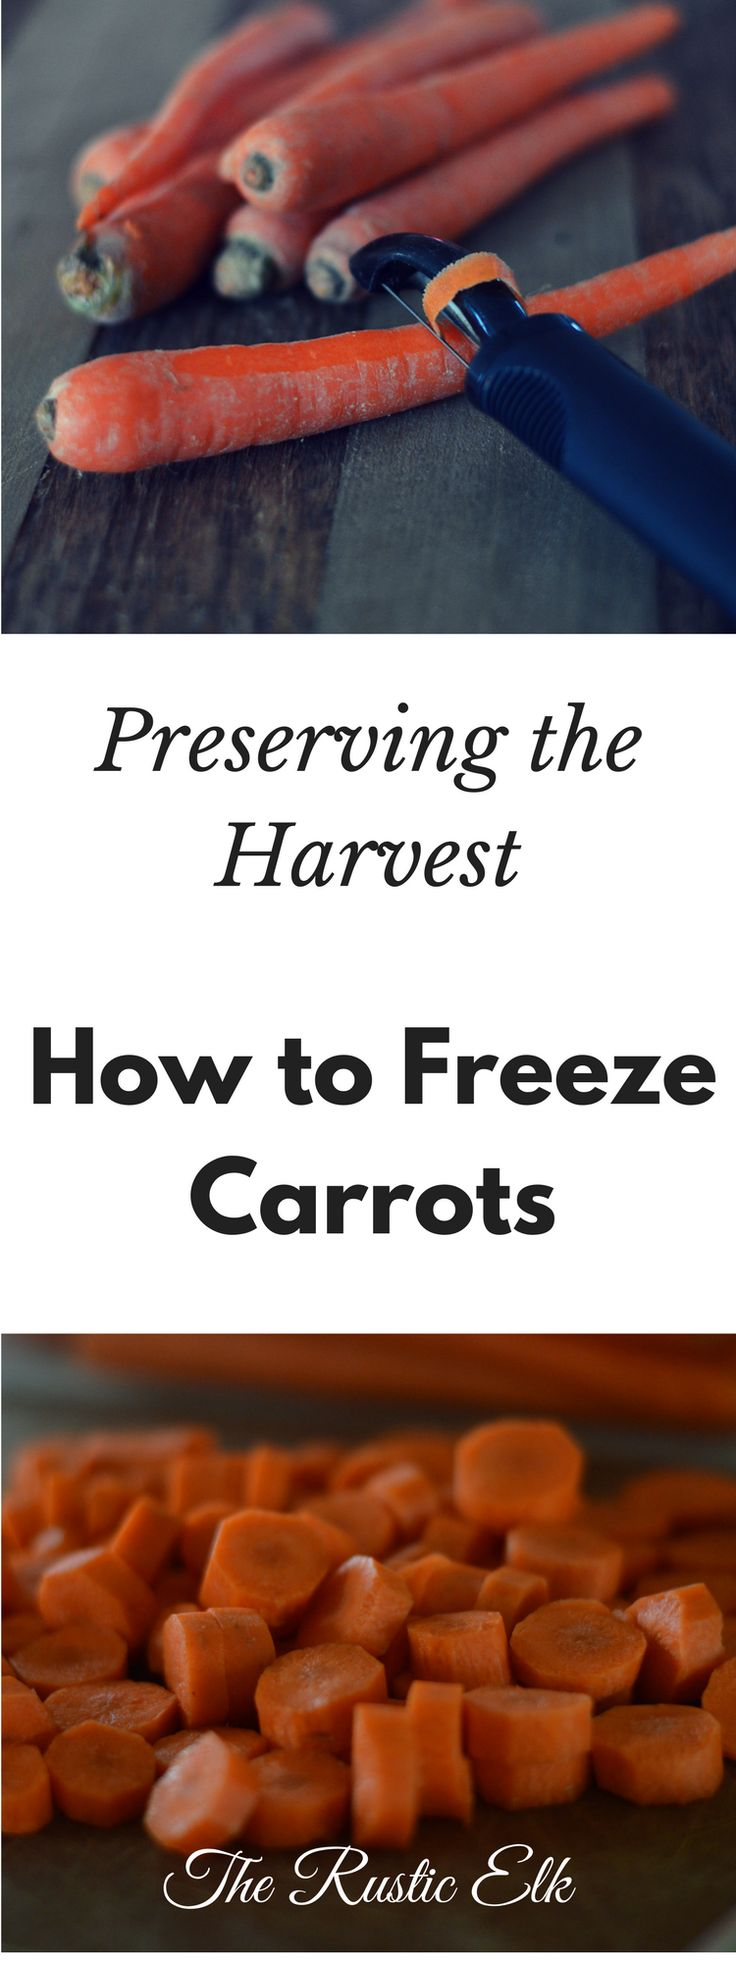 Freezing carrots is an easy way to preserve your harvest without sacrificing time or flavor. Try freezing them for a quick option to add to any meal.